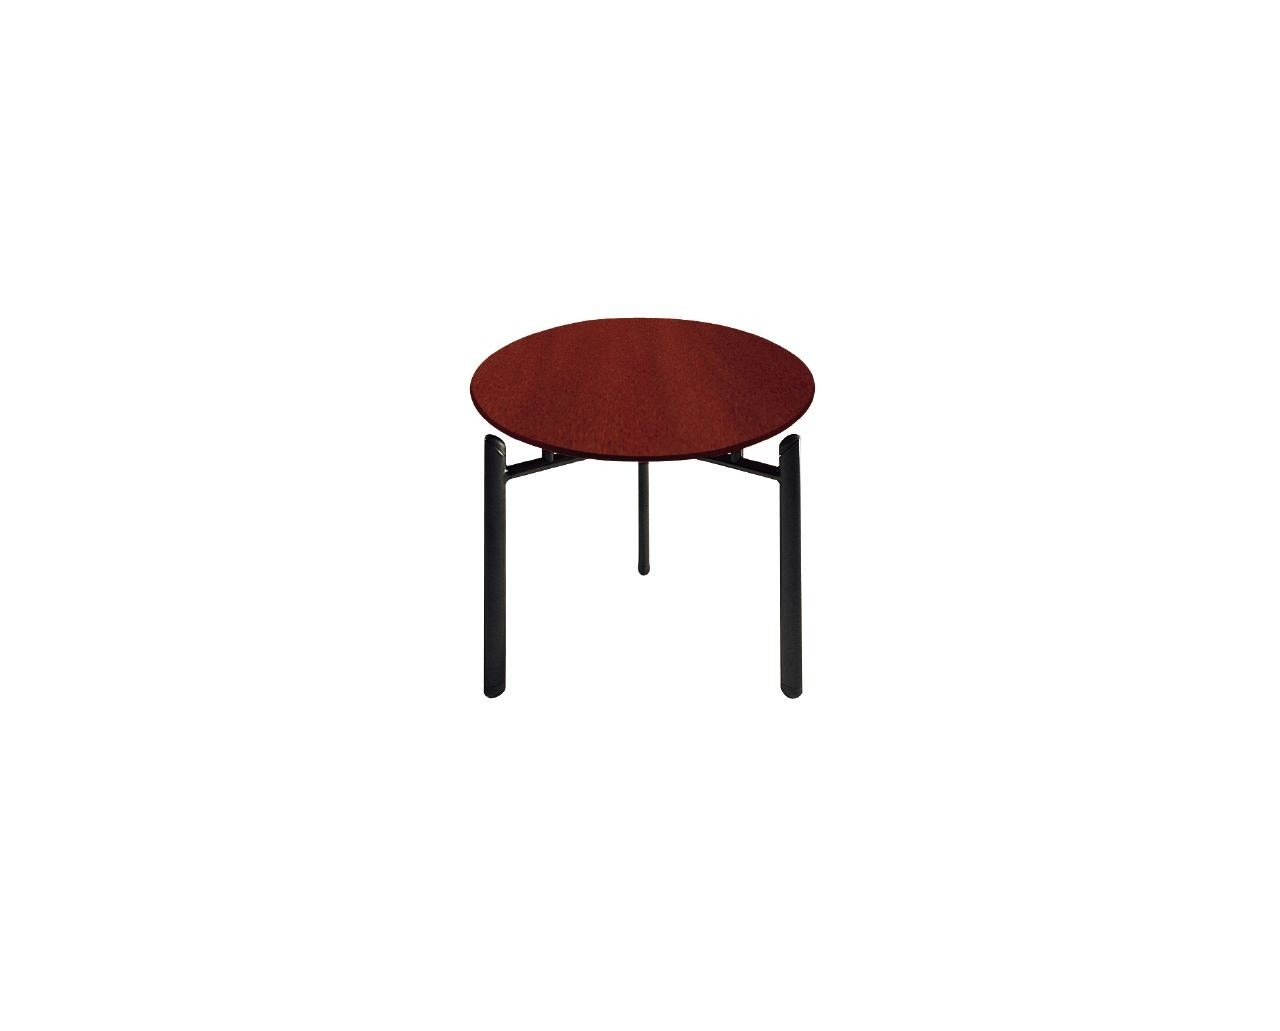 Haworth Improv Series Occasional Tables